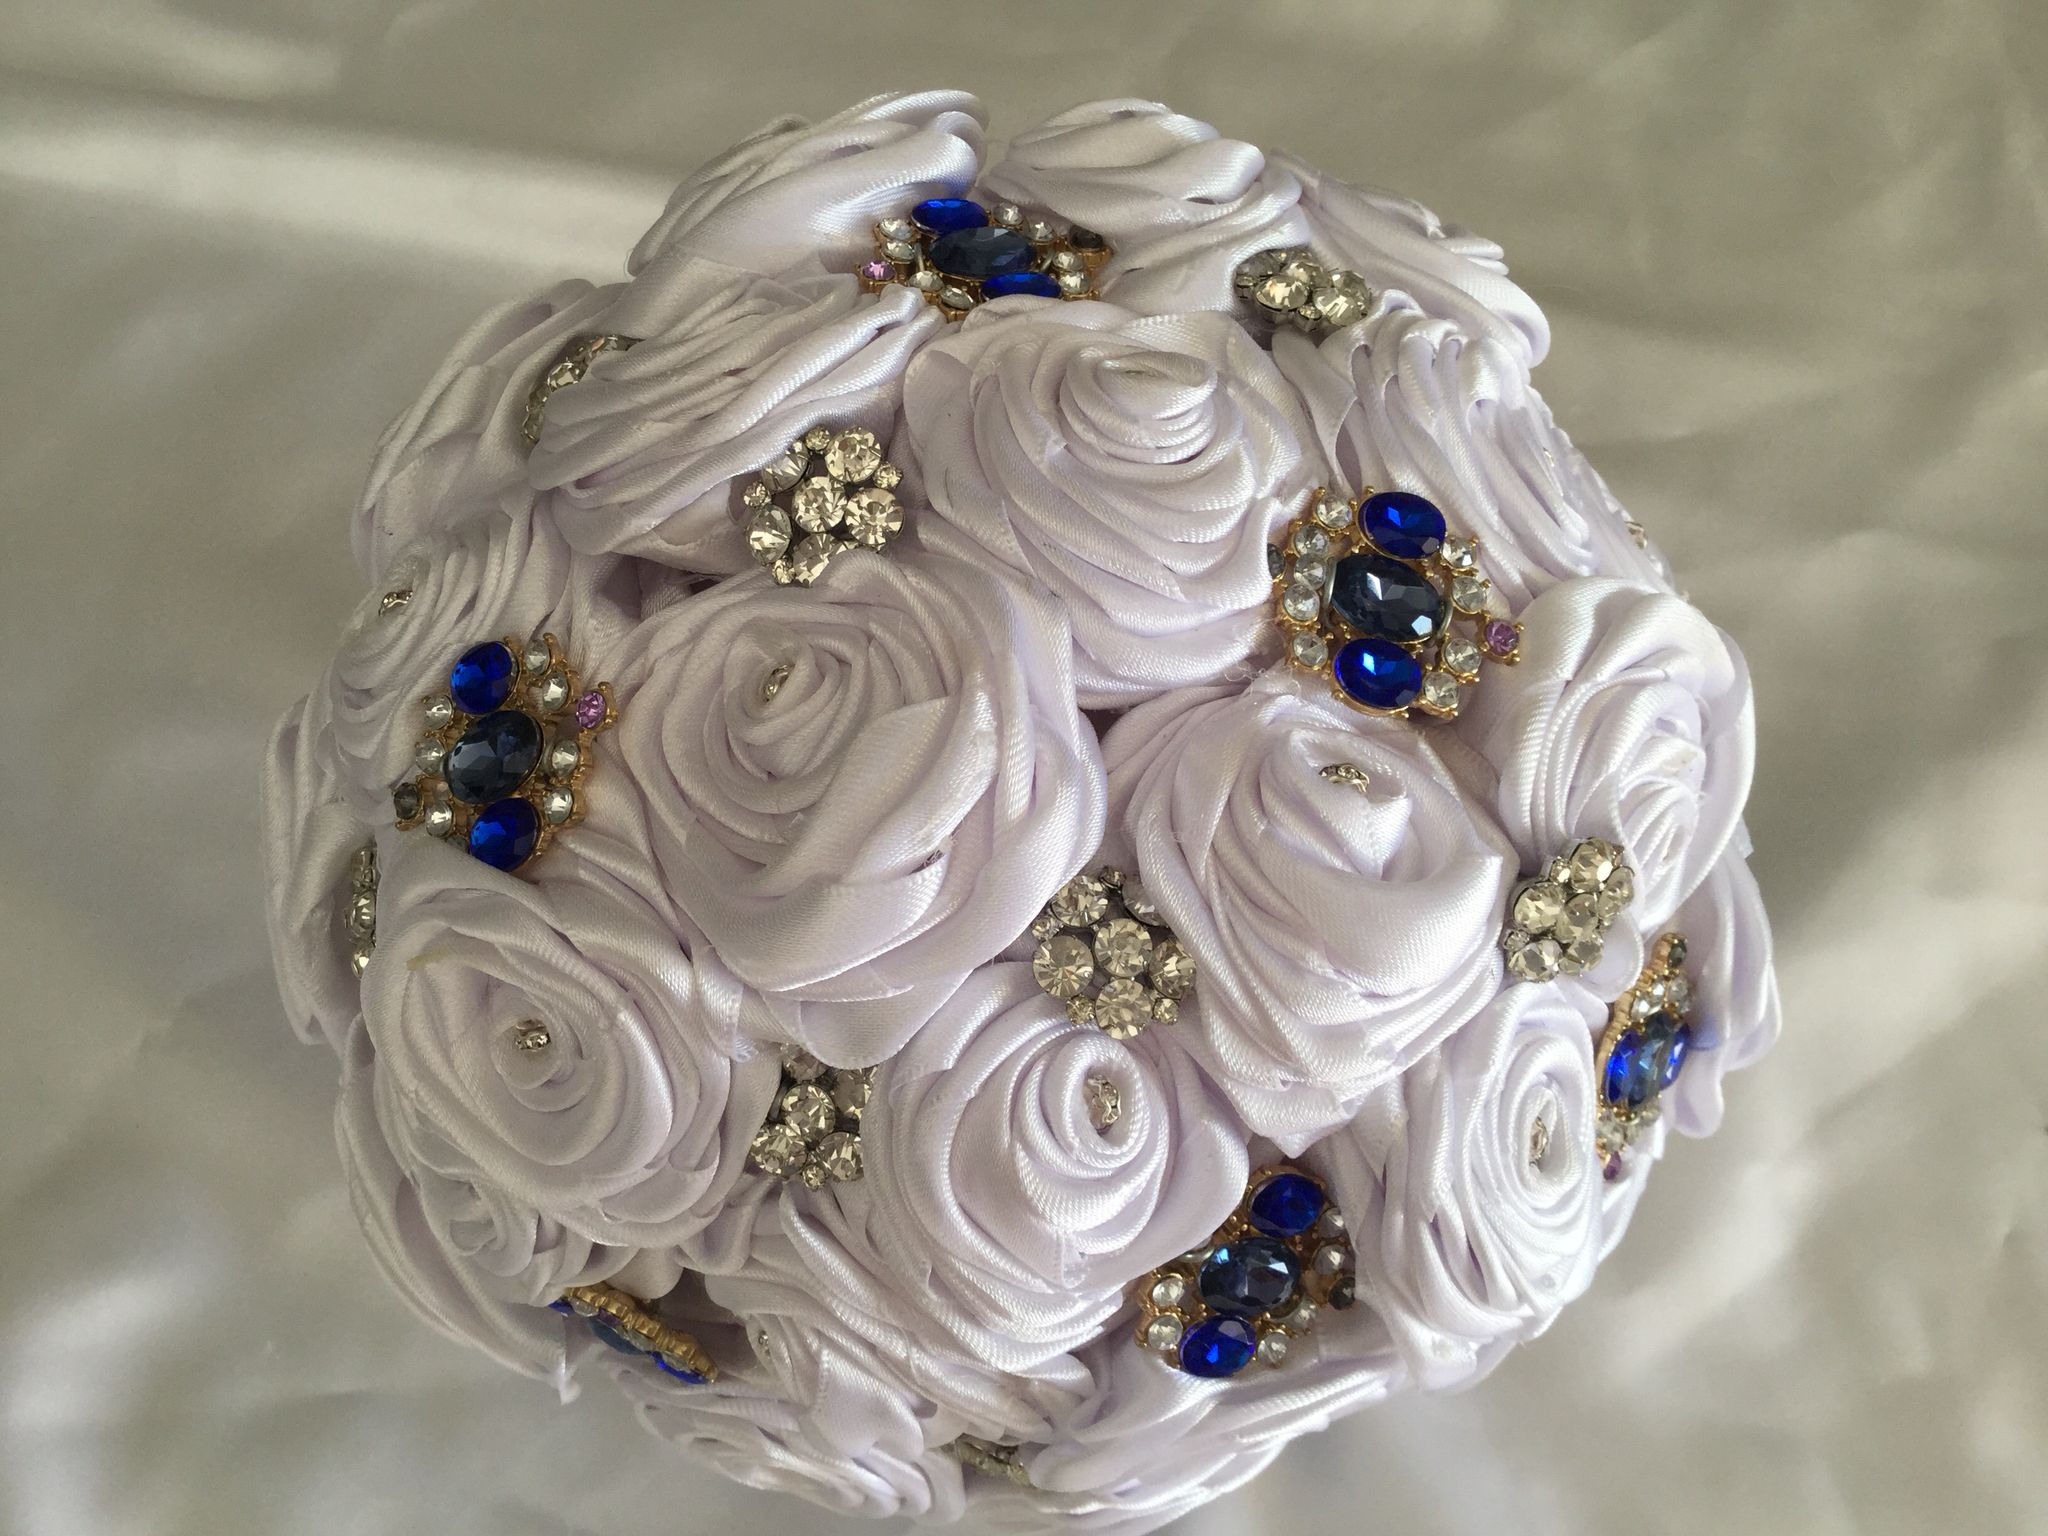 A stunningly elegant half sphere bouquet of white closed roses with a bling centre, covered with a scattering of clear and blue small brooches.  All bouquets can be reproduced in the size and colour of your choice. Feel free to mix and match ideas to make your bouquet more individual. Corsage, MOB and Lapel pins are also available to match your colours. Contact leeann@bejewelledbridal.com.au for more information.